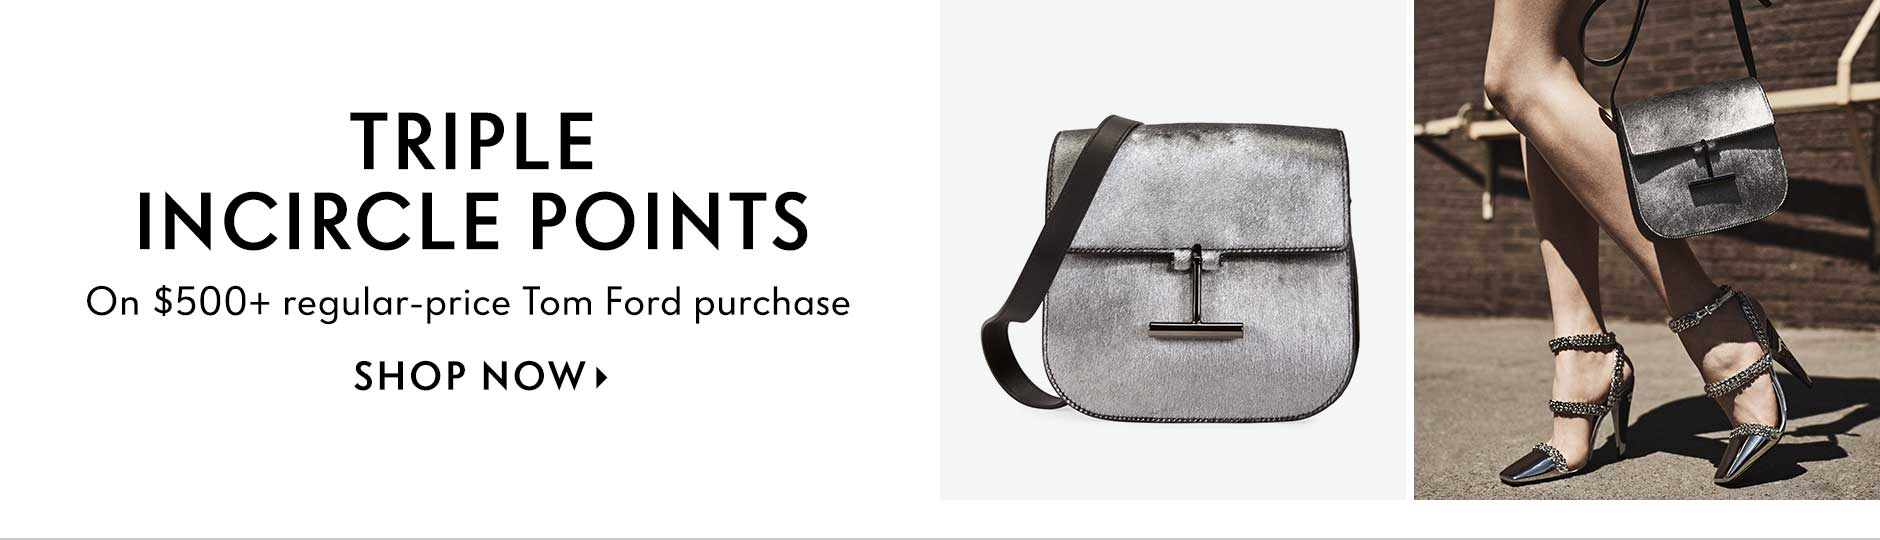 Triple InCircle Points - On $500+ regular-price Tom Ford purchase